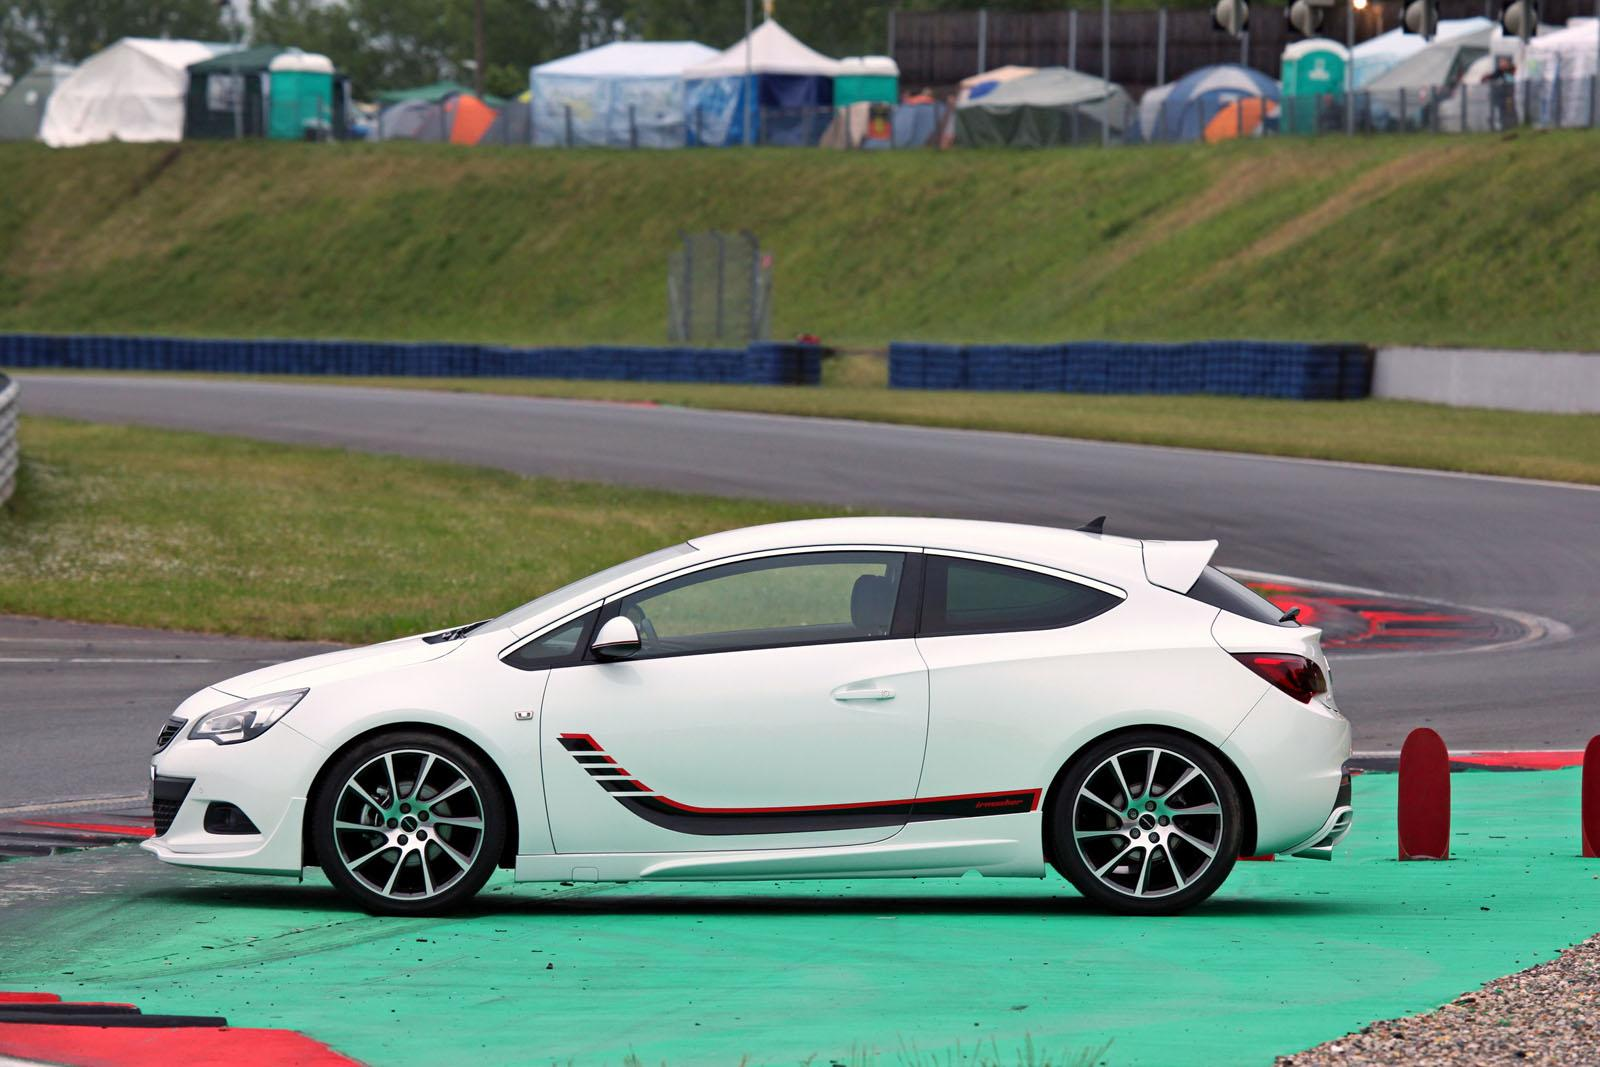 Irmscher Opel Astra Gtc Turbo I 1400 Boasts With 170